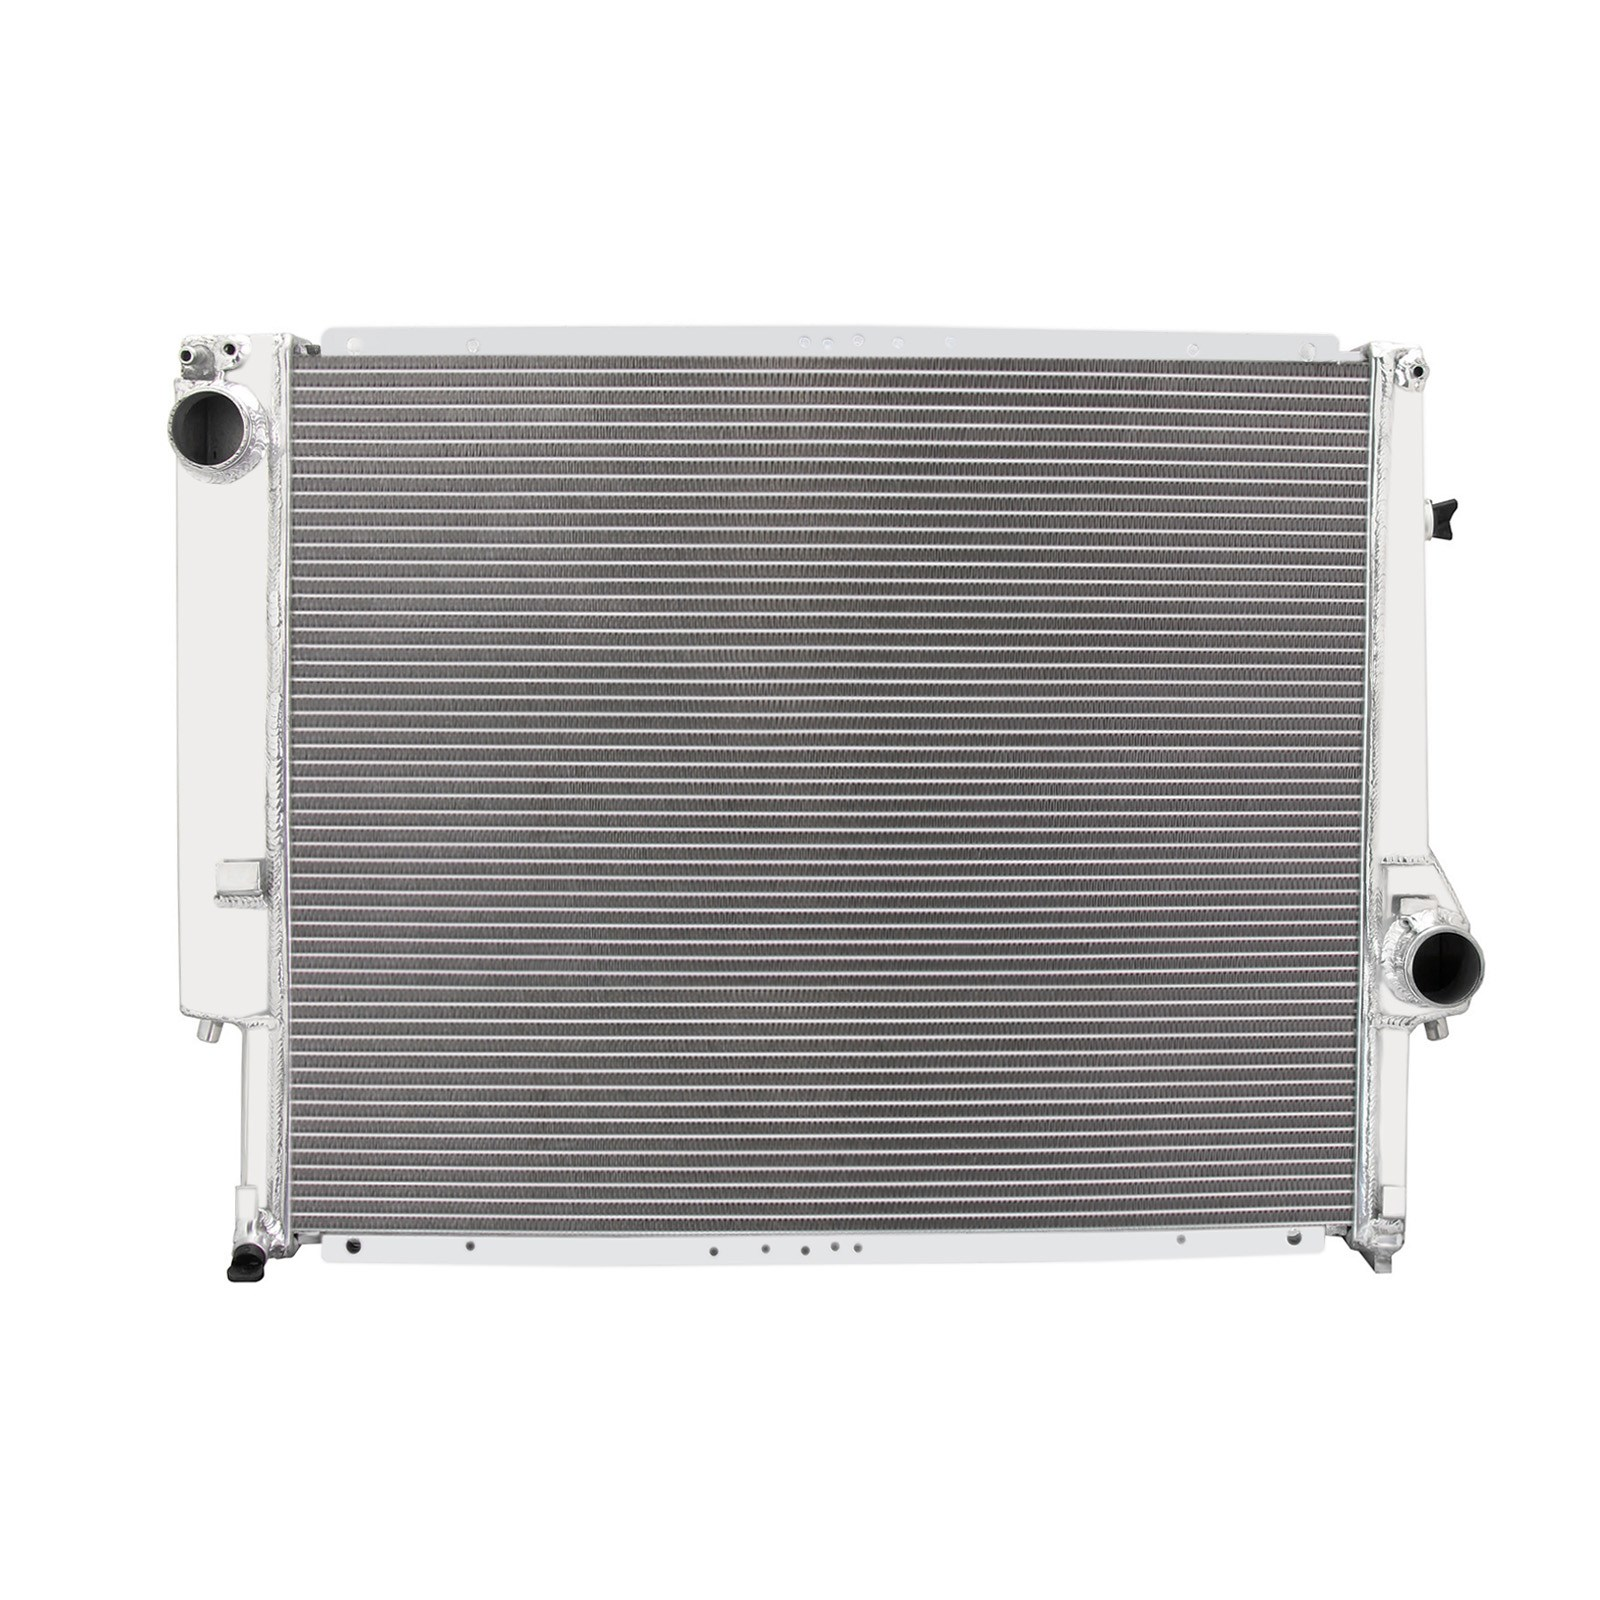 Dromedary-Best 1841 Full Aluminum Racing Radiator For Bmw M3 325 E32 1992-2000 Mt-1